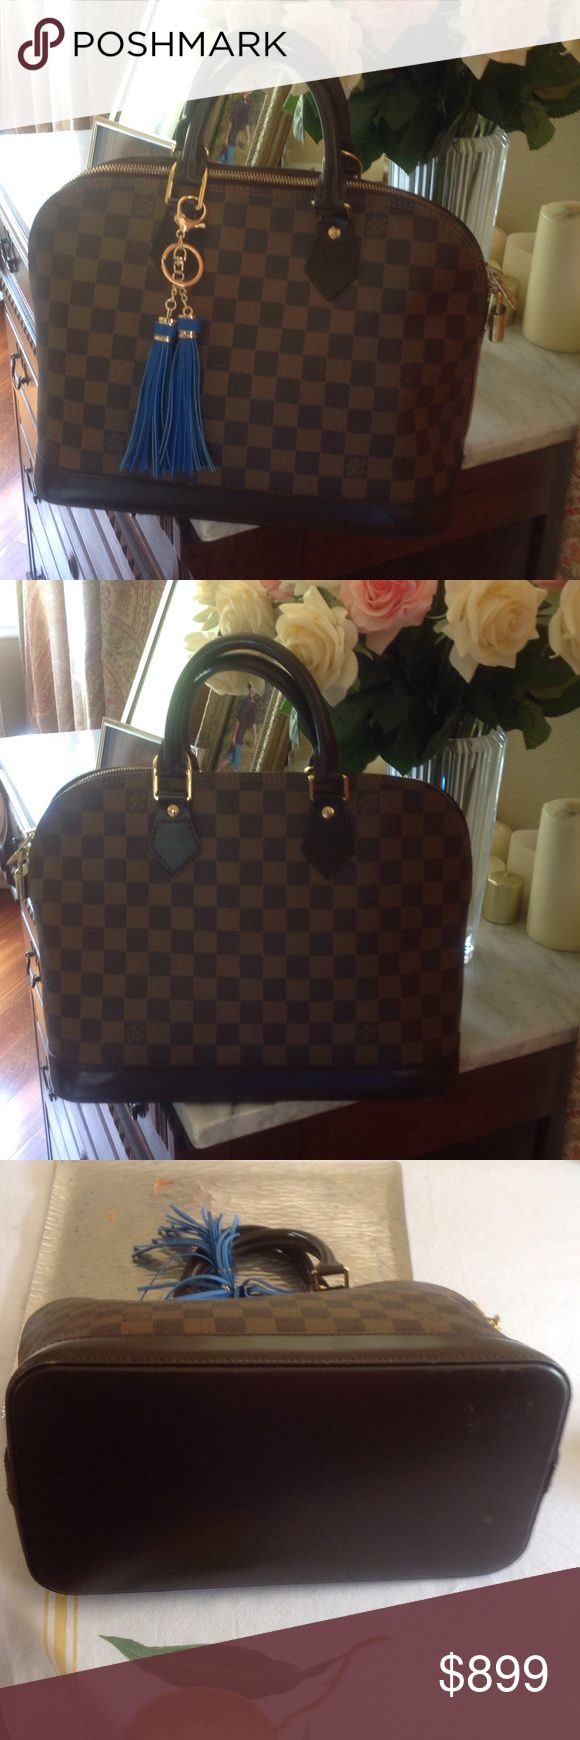 Authentic Louis Vuitton Alma Damier ebene Stunning bag! Lovely condition!  FL 1029 date code. This is one of the most elegant Vuitton styles Louis Vuitton Bags Satchels